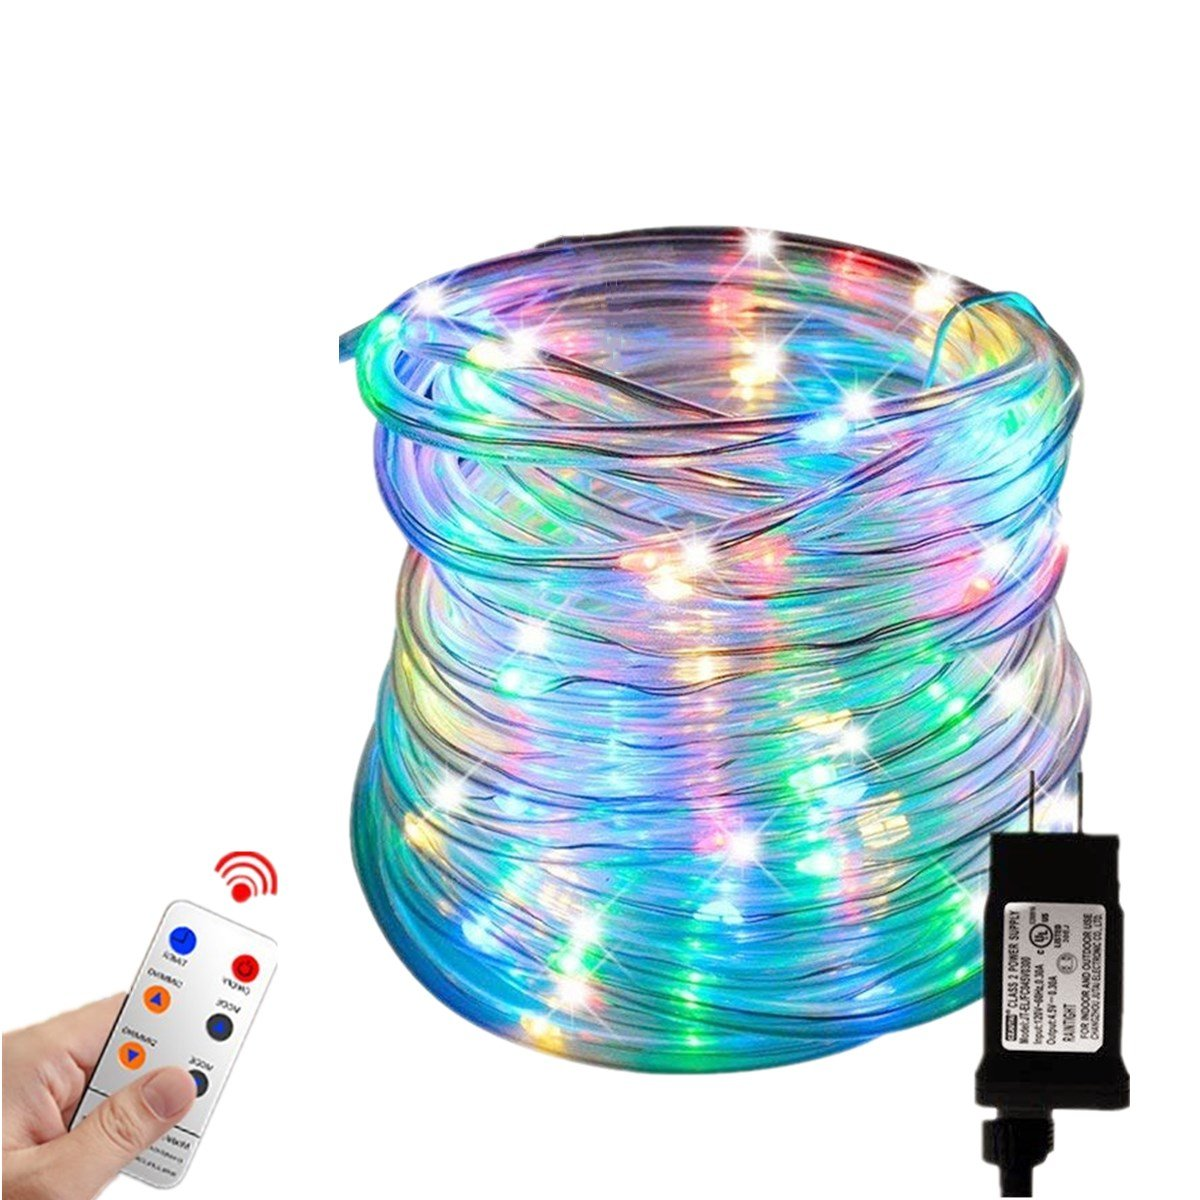 Zinuo LED String Rope Lights 33FT 136 LED Waterproof Outdoor Rope Lights, RF Remote, 8 Modes/Timer, Multi Color Patio Lights for Gardens Parties Wedding Holiday Decor (A Power Adaptor Included) by Zinuo (Image #2)